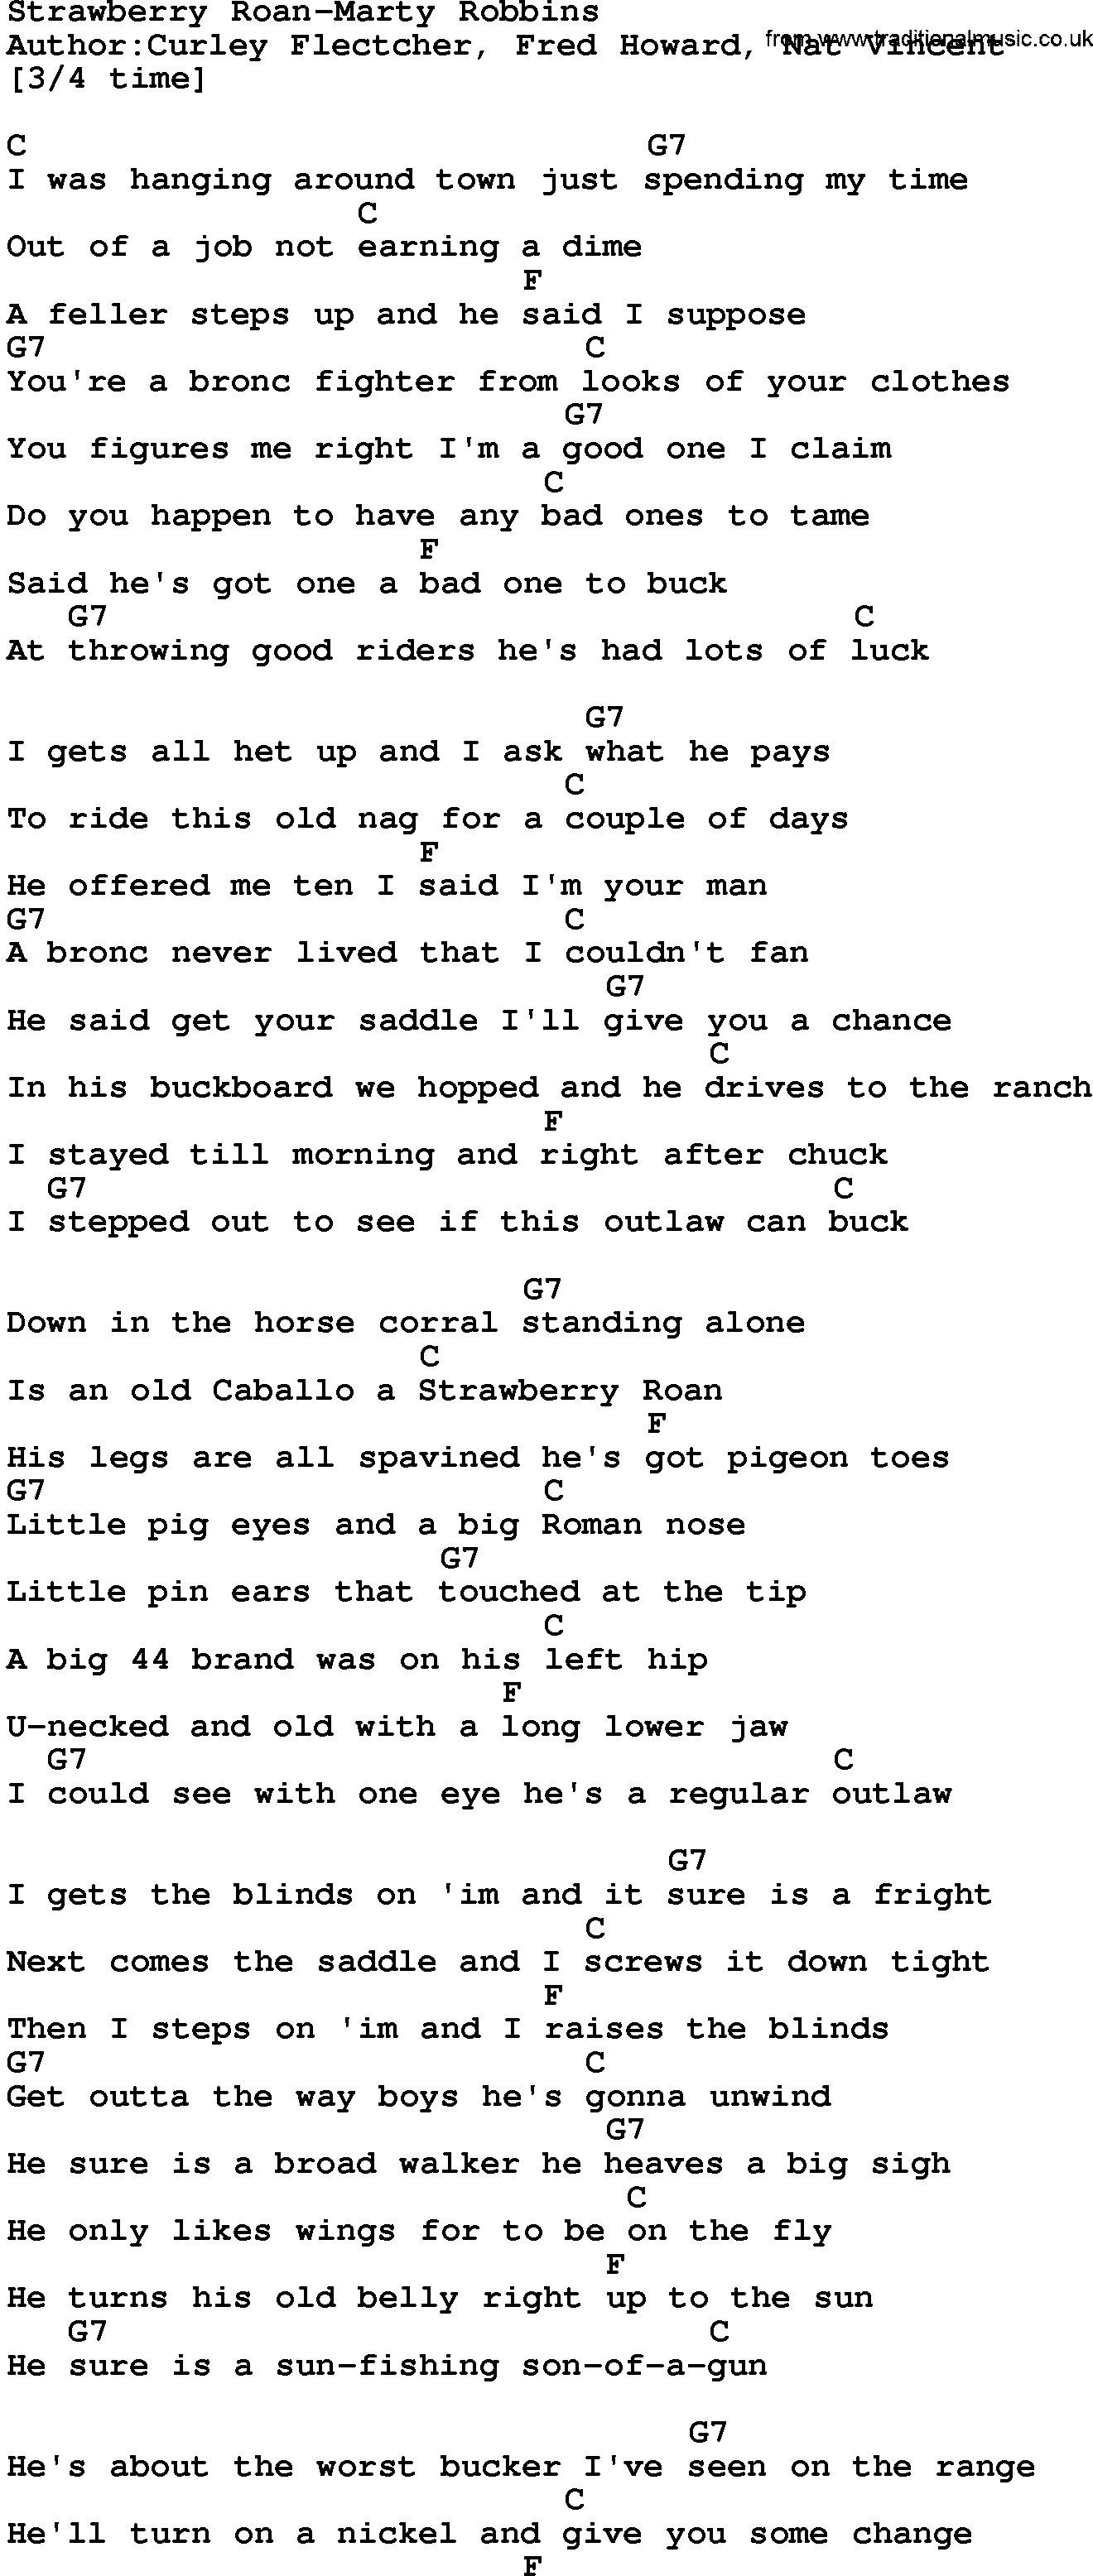 Country Music:Strawberry Roan-Marty Robbins Lyrics and Chords - photo#7